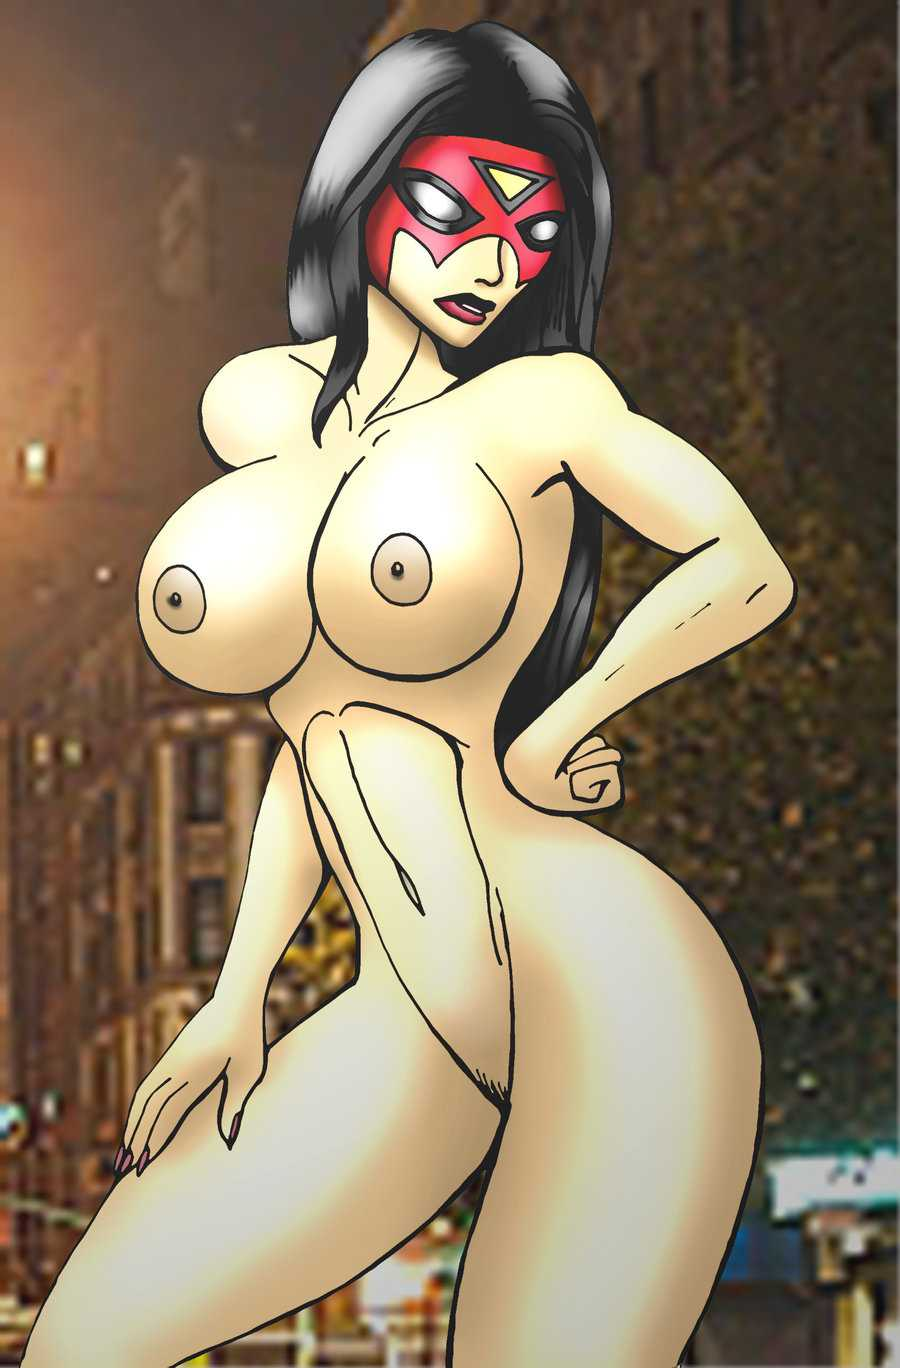 Spider-Woman (Jessica Drew) naked